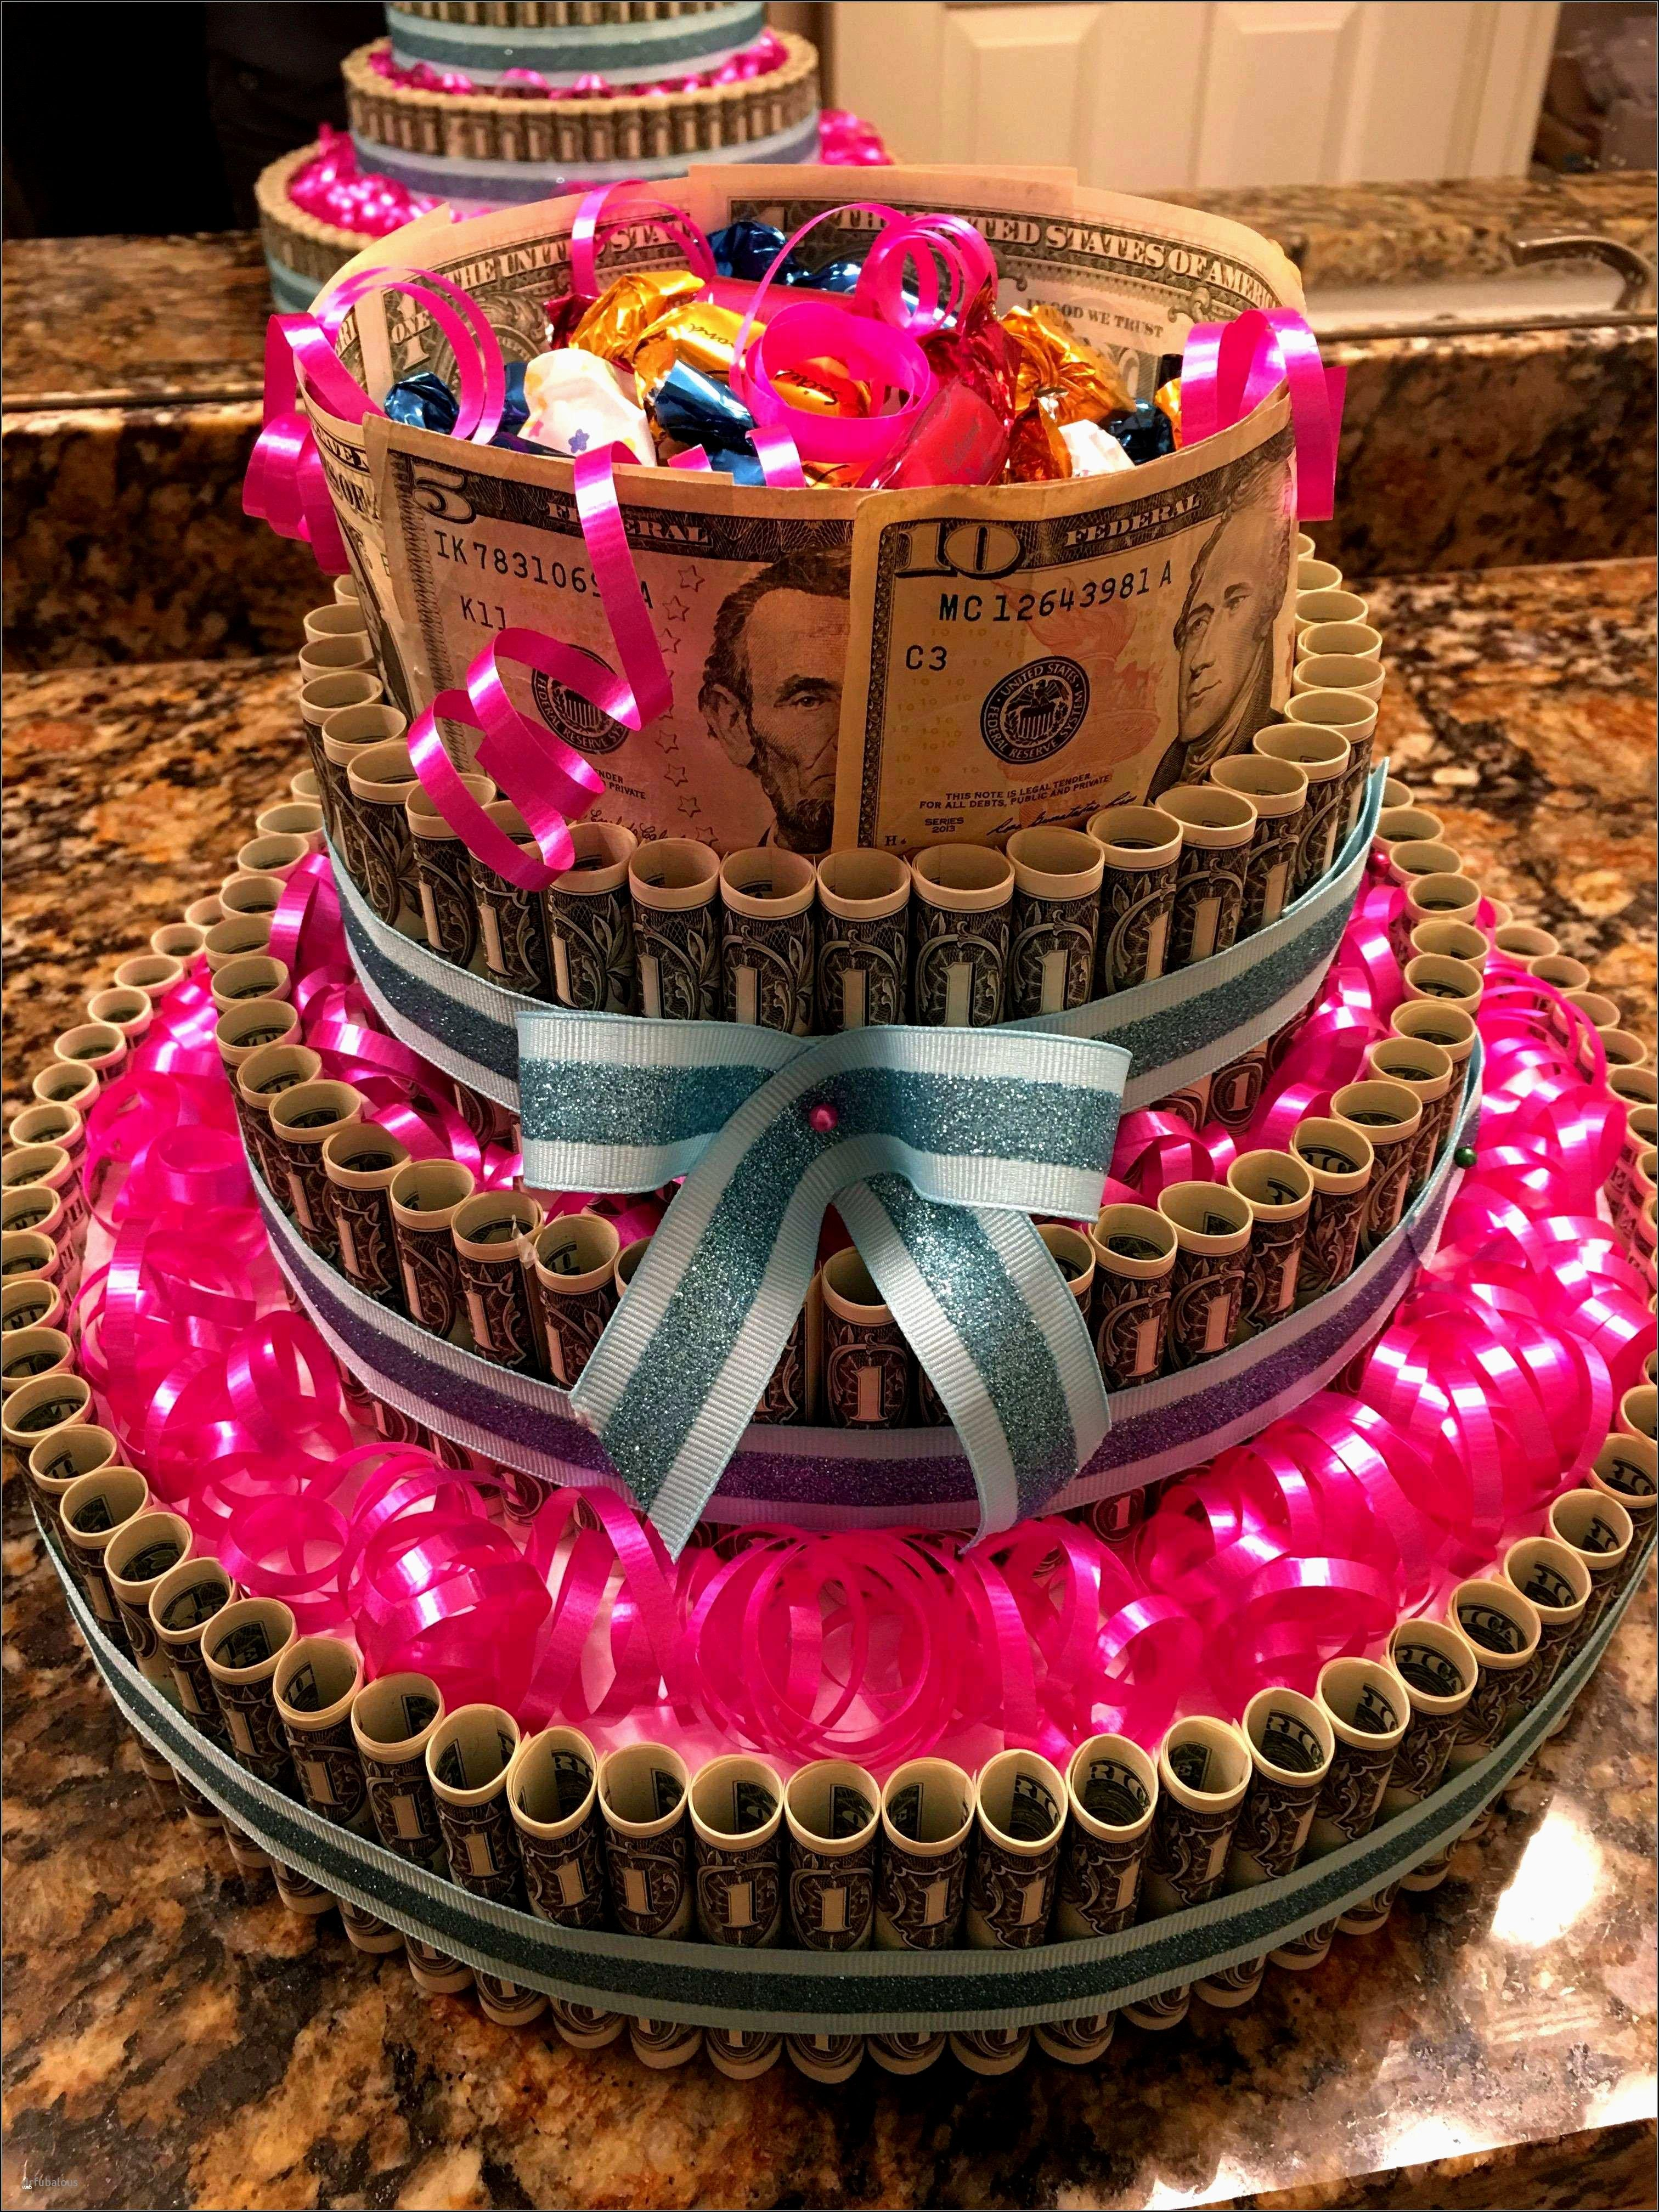 20 magnificent 3 year old birthday gift ideas